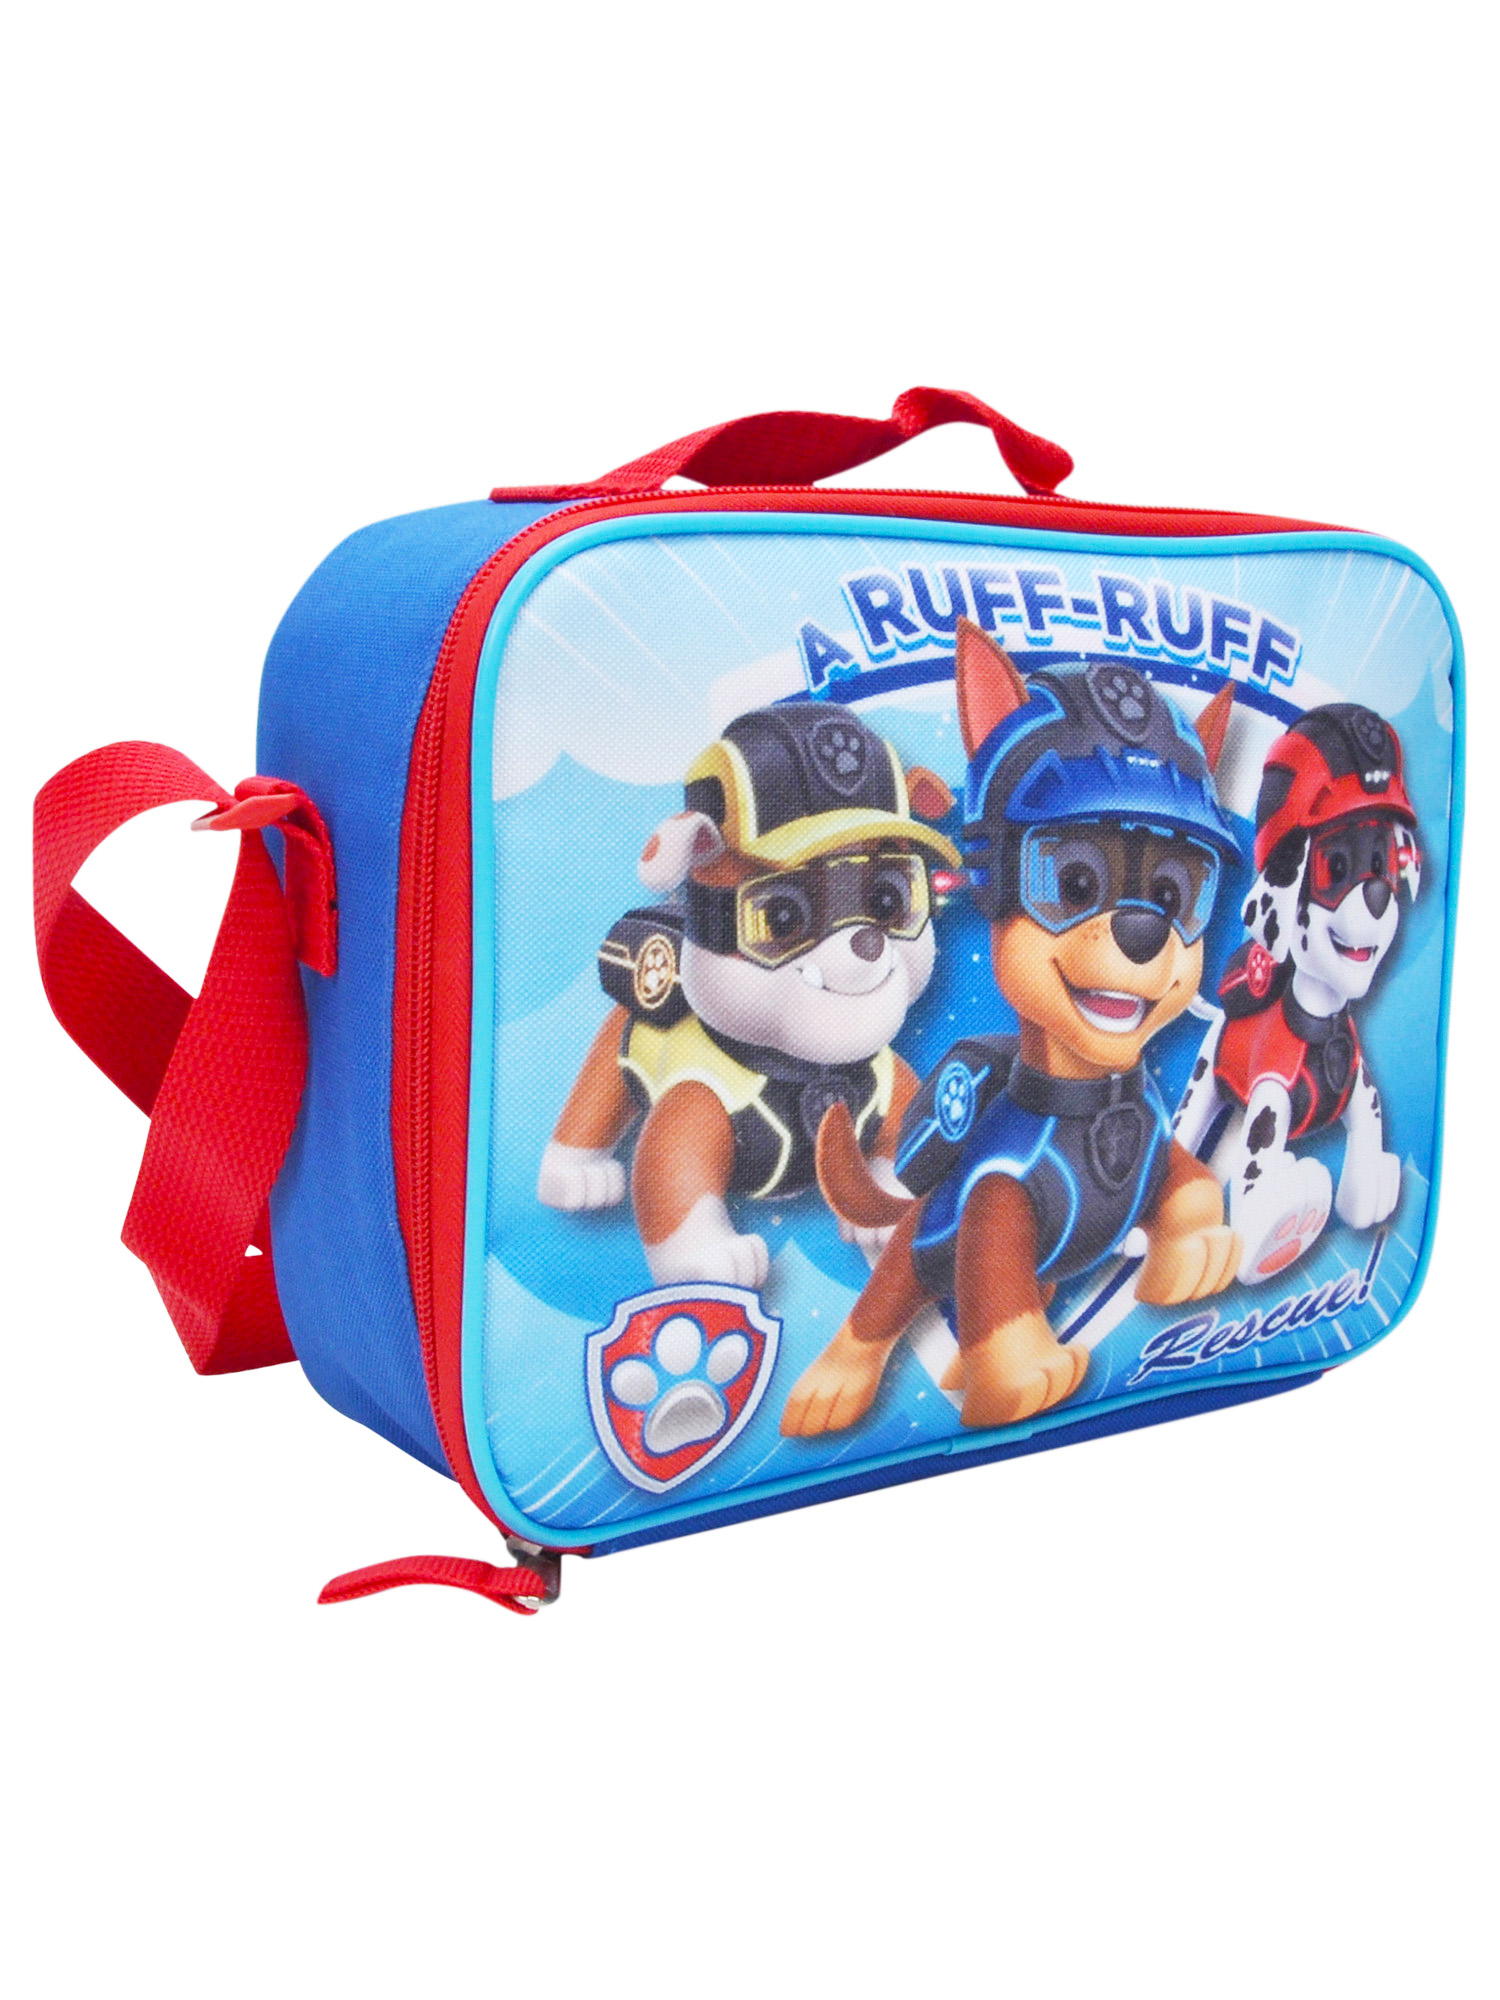 Boys Paw Patrol Insulated Lunch Bag with Shoulder Strap